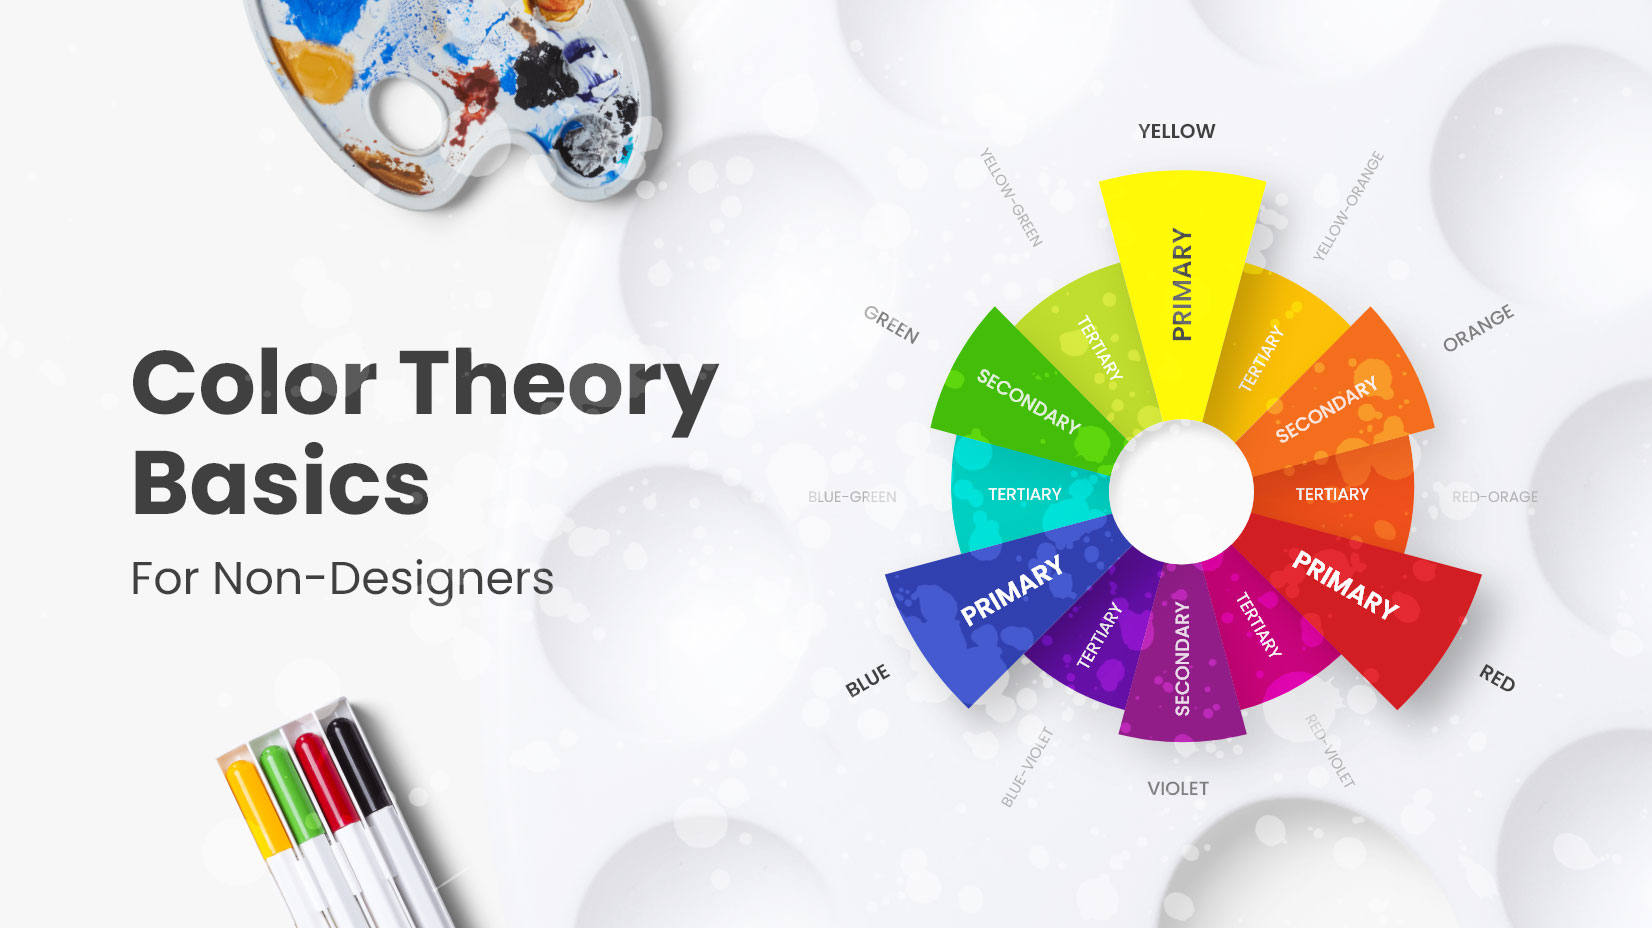 Color Theory Basics For Non-Designers: Everything You Should Know